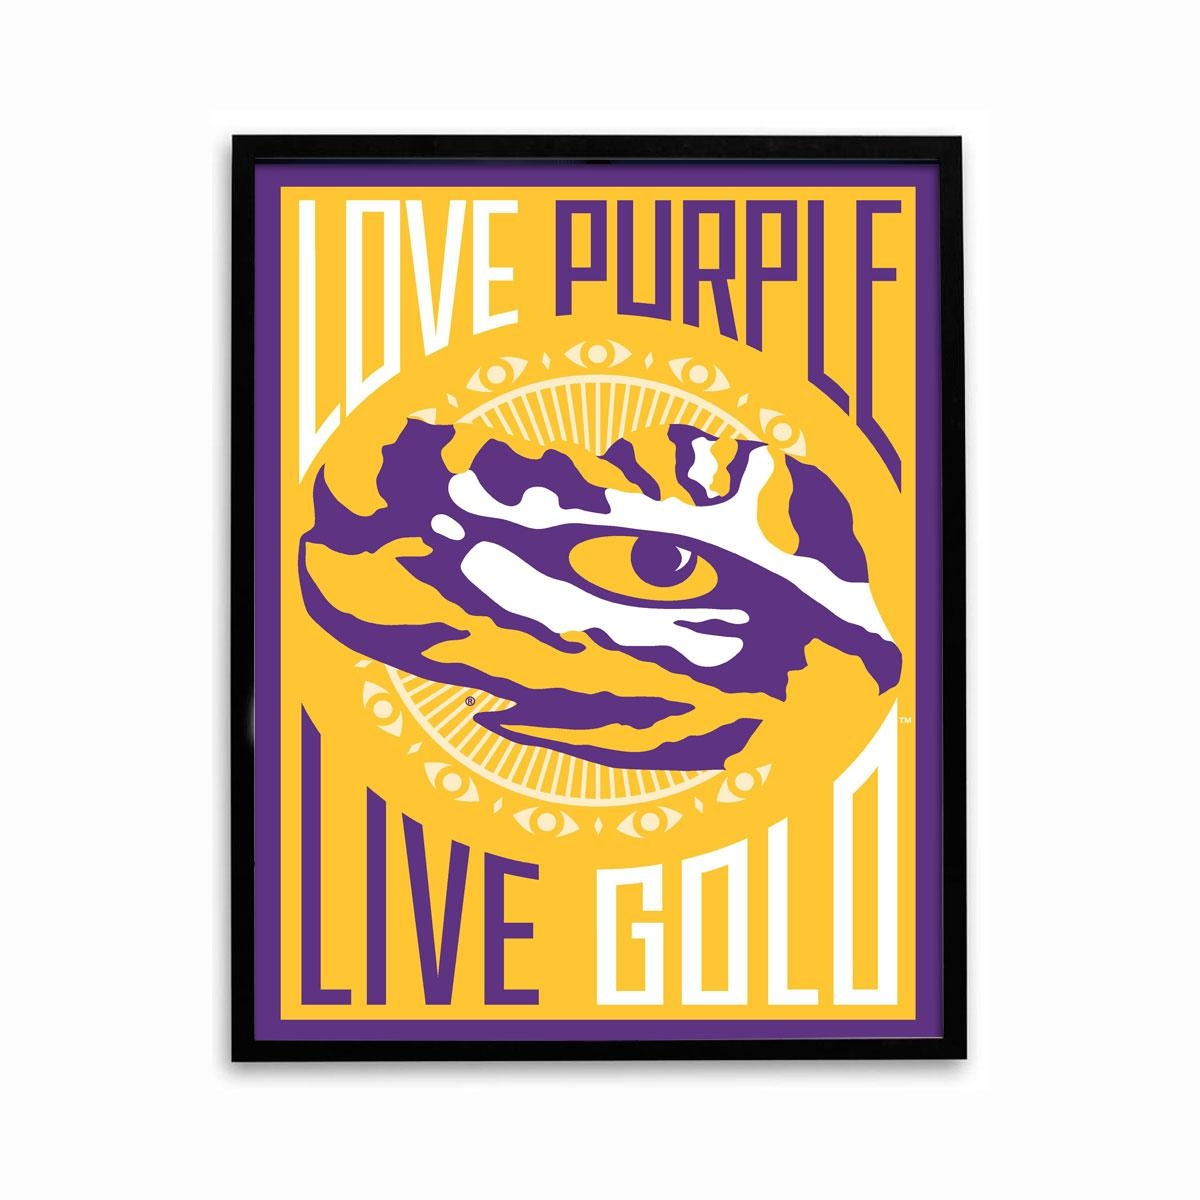 Lsu Tigers Roar Tyrann Mathieu Poster Football With Regard To Lsu Wall Art (View 5 of 20)